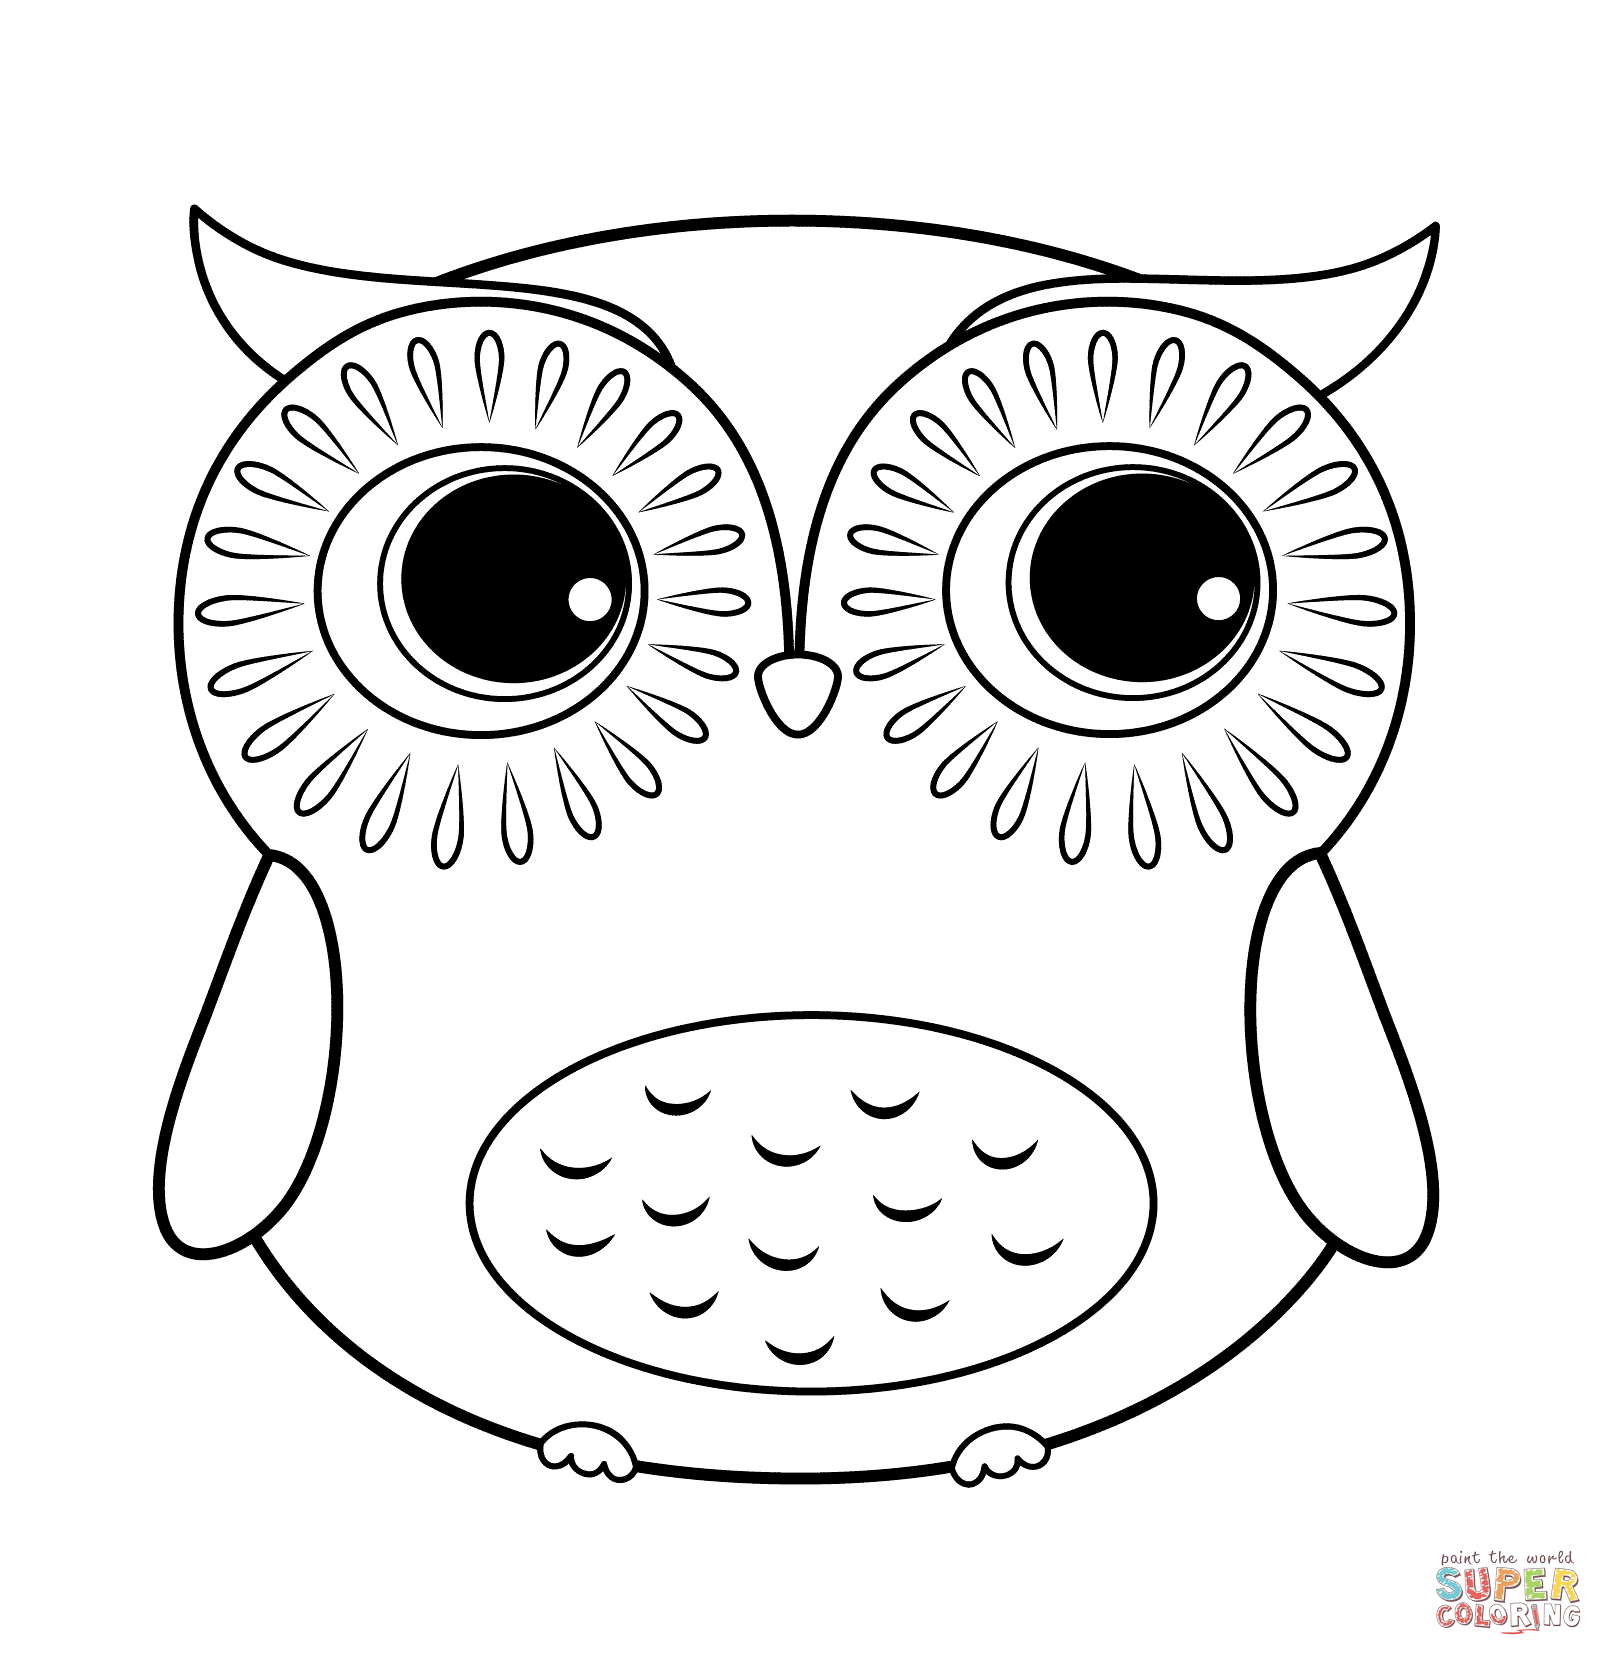 Pin By Zsani P On Owls For Olalla Owl Coloring Pages Cartoon Coloring Pages Cute Easy Animal Drawings